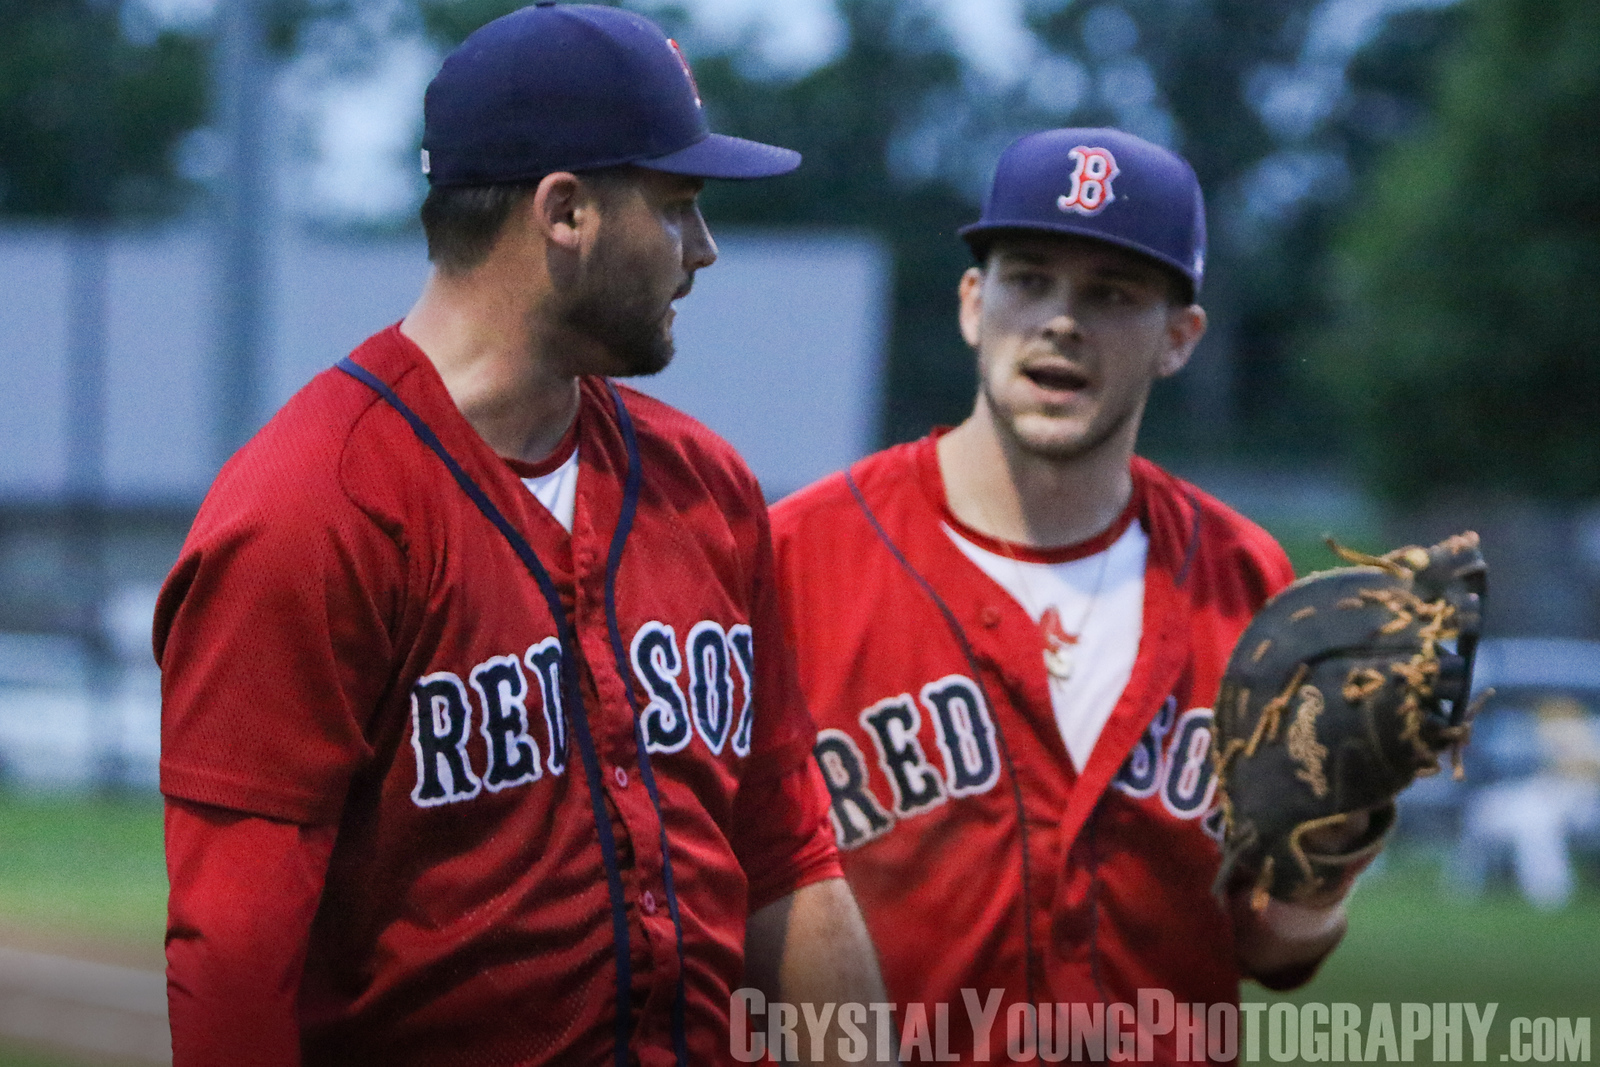 Burlington Herd at Brantford Red Sox June 30, 2017